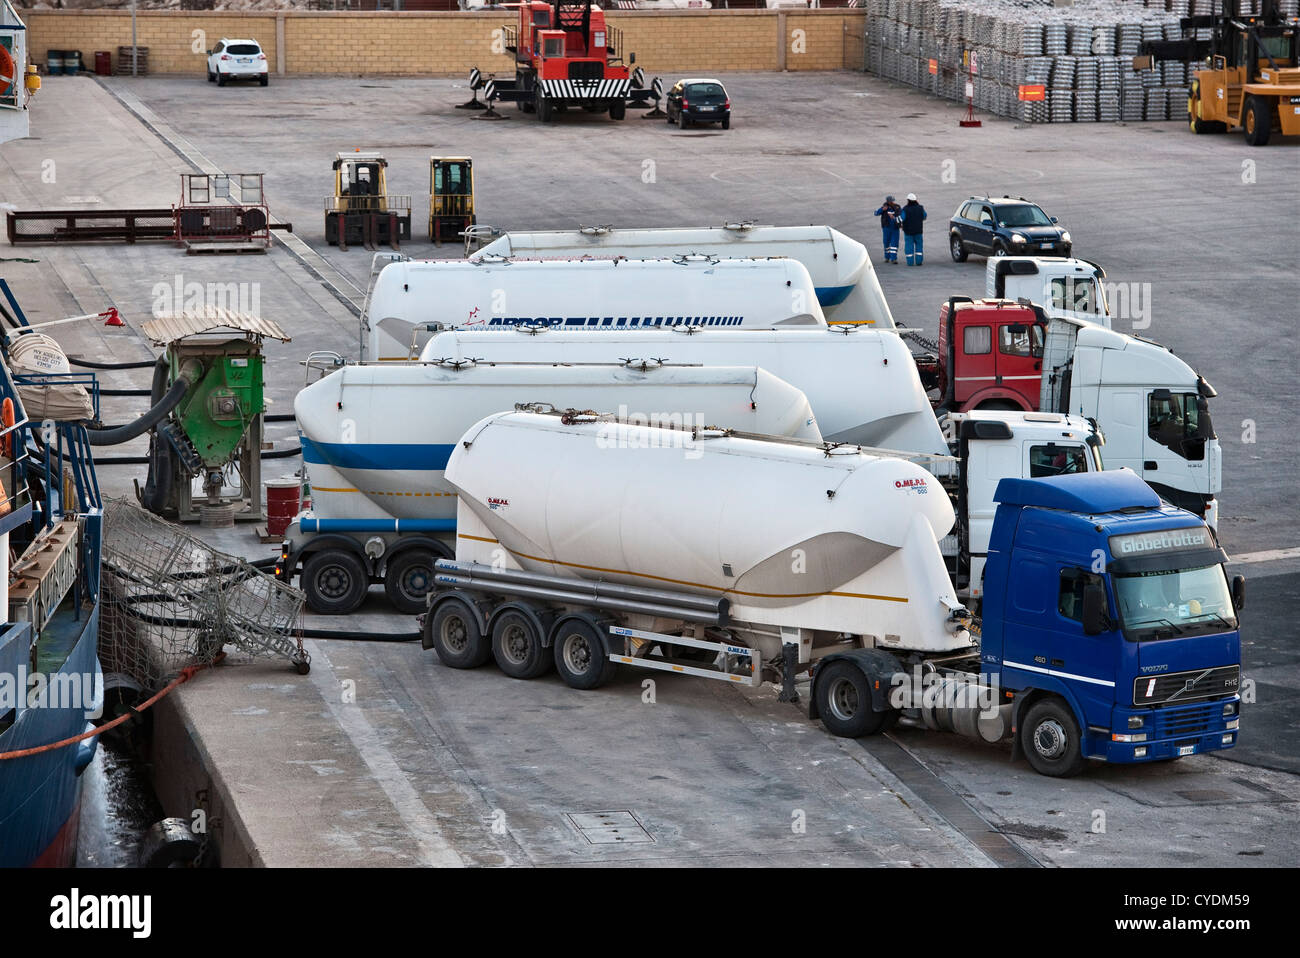 The port of Pozzallo, Sicily, Italy. Road tankers at the quayside taking on or discharging bulk cargo - Stock Image